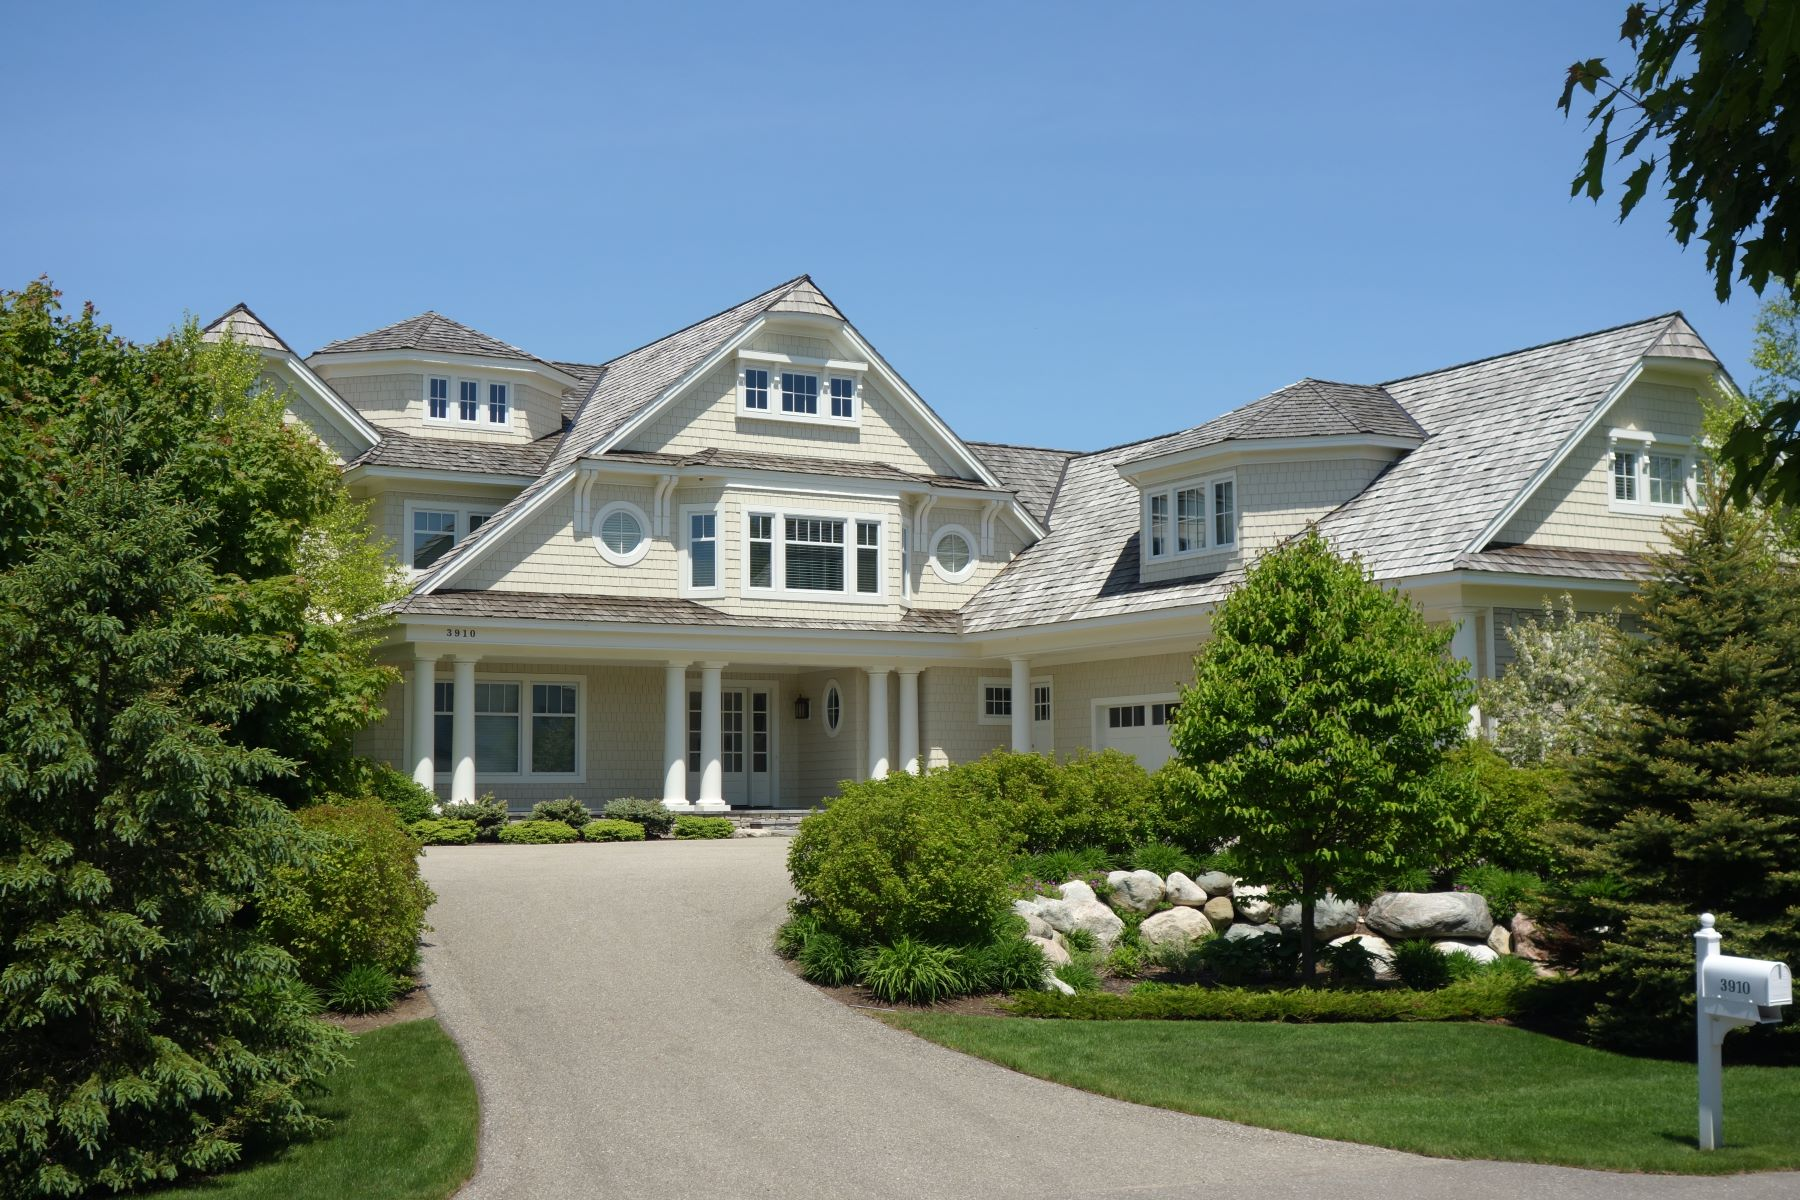 Single Family Homes for Sale at Grand and Inviting Waterfront Home 3910 Peninsula Drive Bay Harbor, Michigan 49770 United States